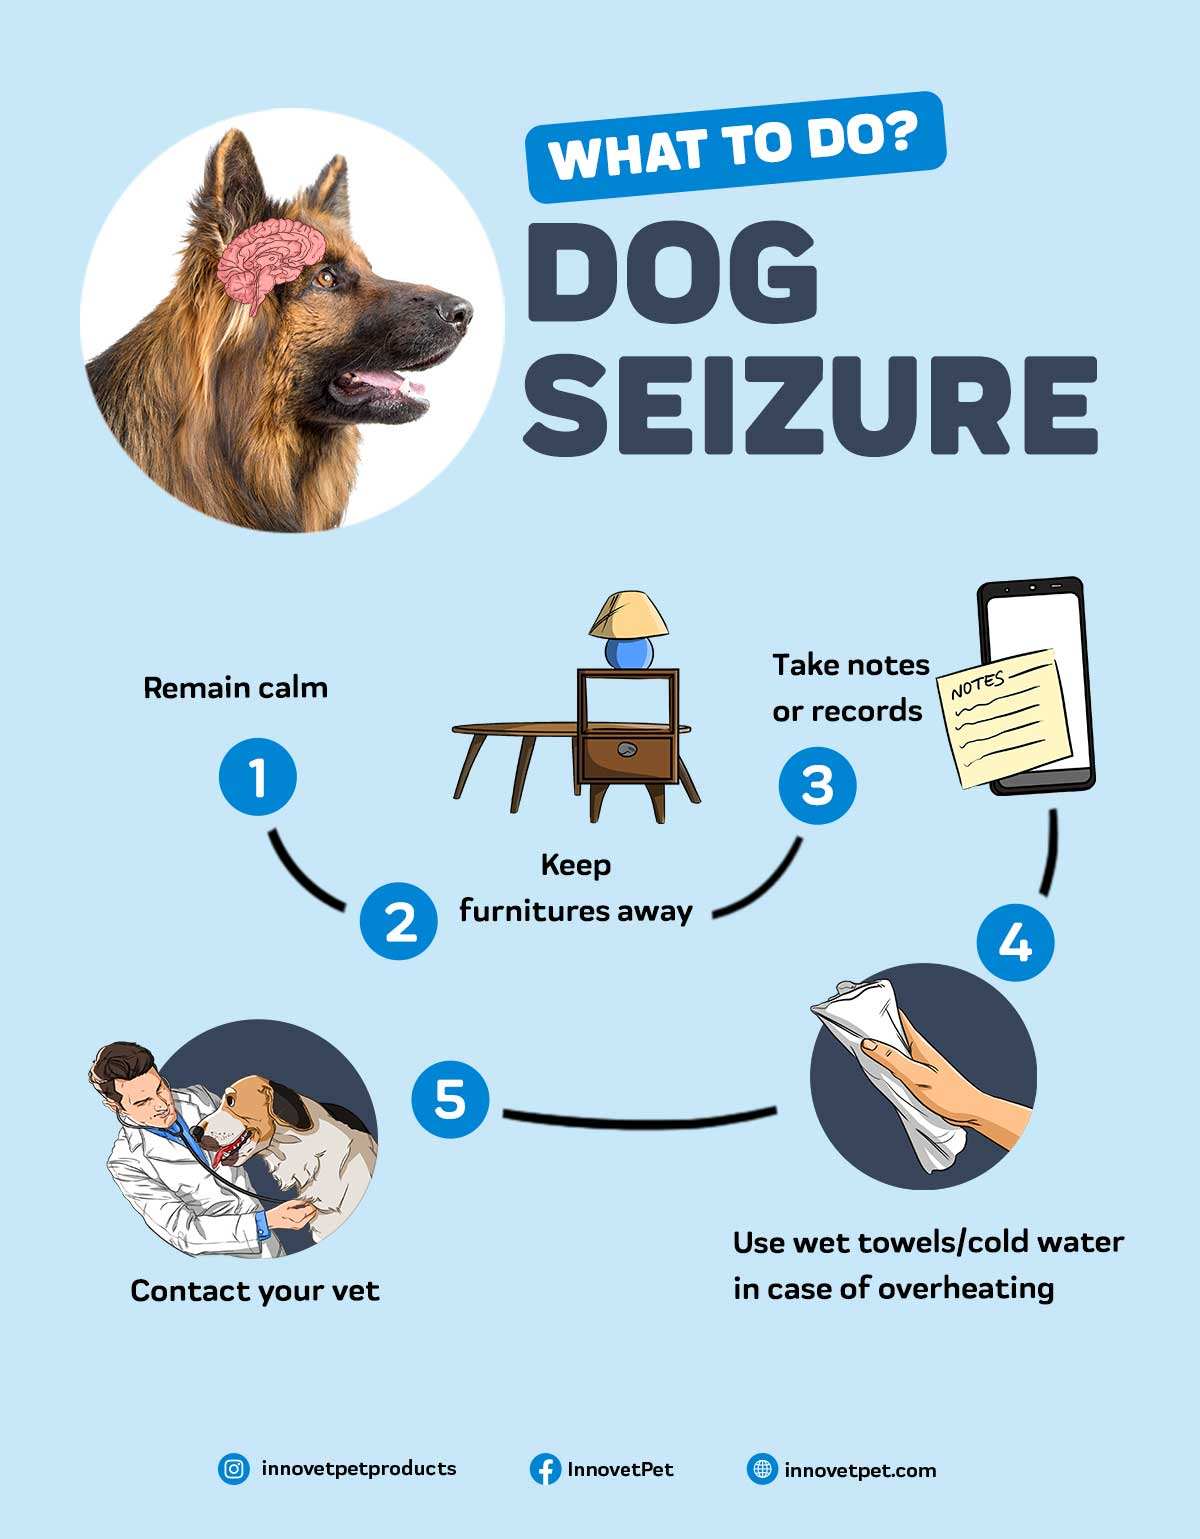 What should should I do when my dog is having a seizure